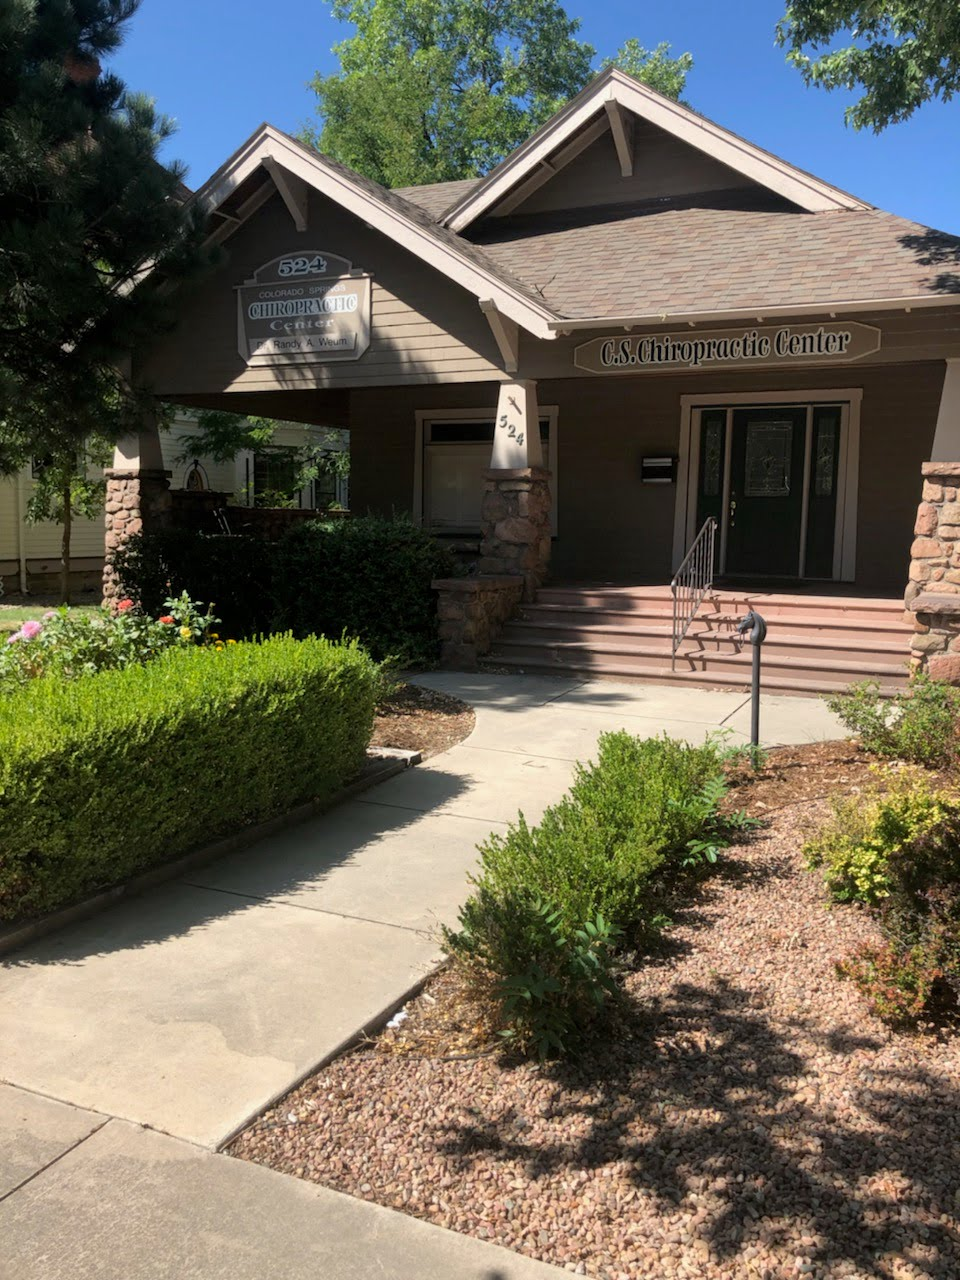 Colorado Springs Chiropractic Center